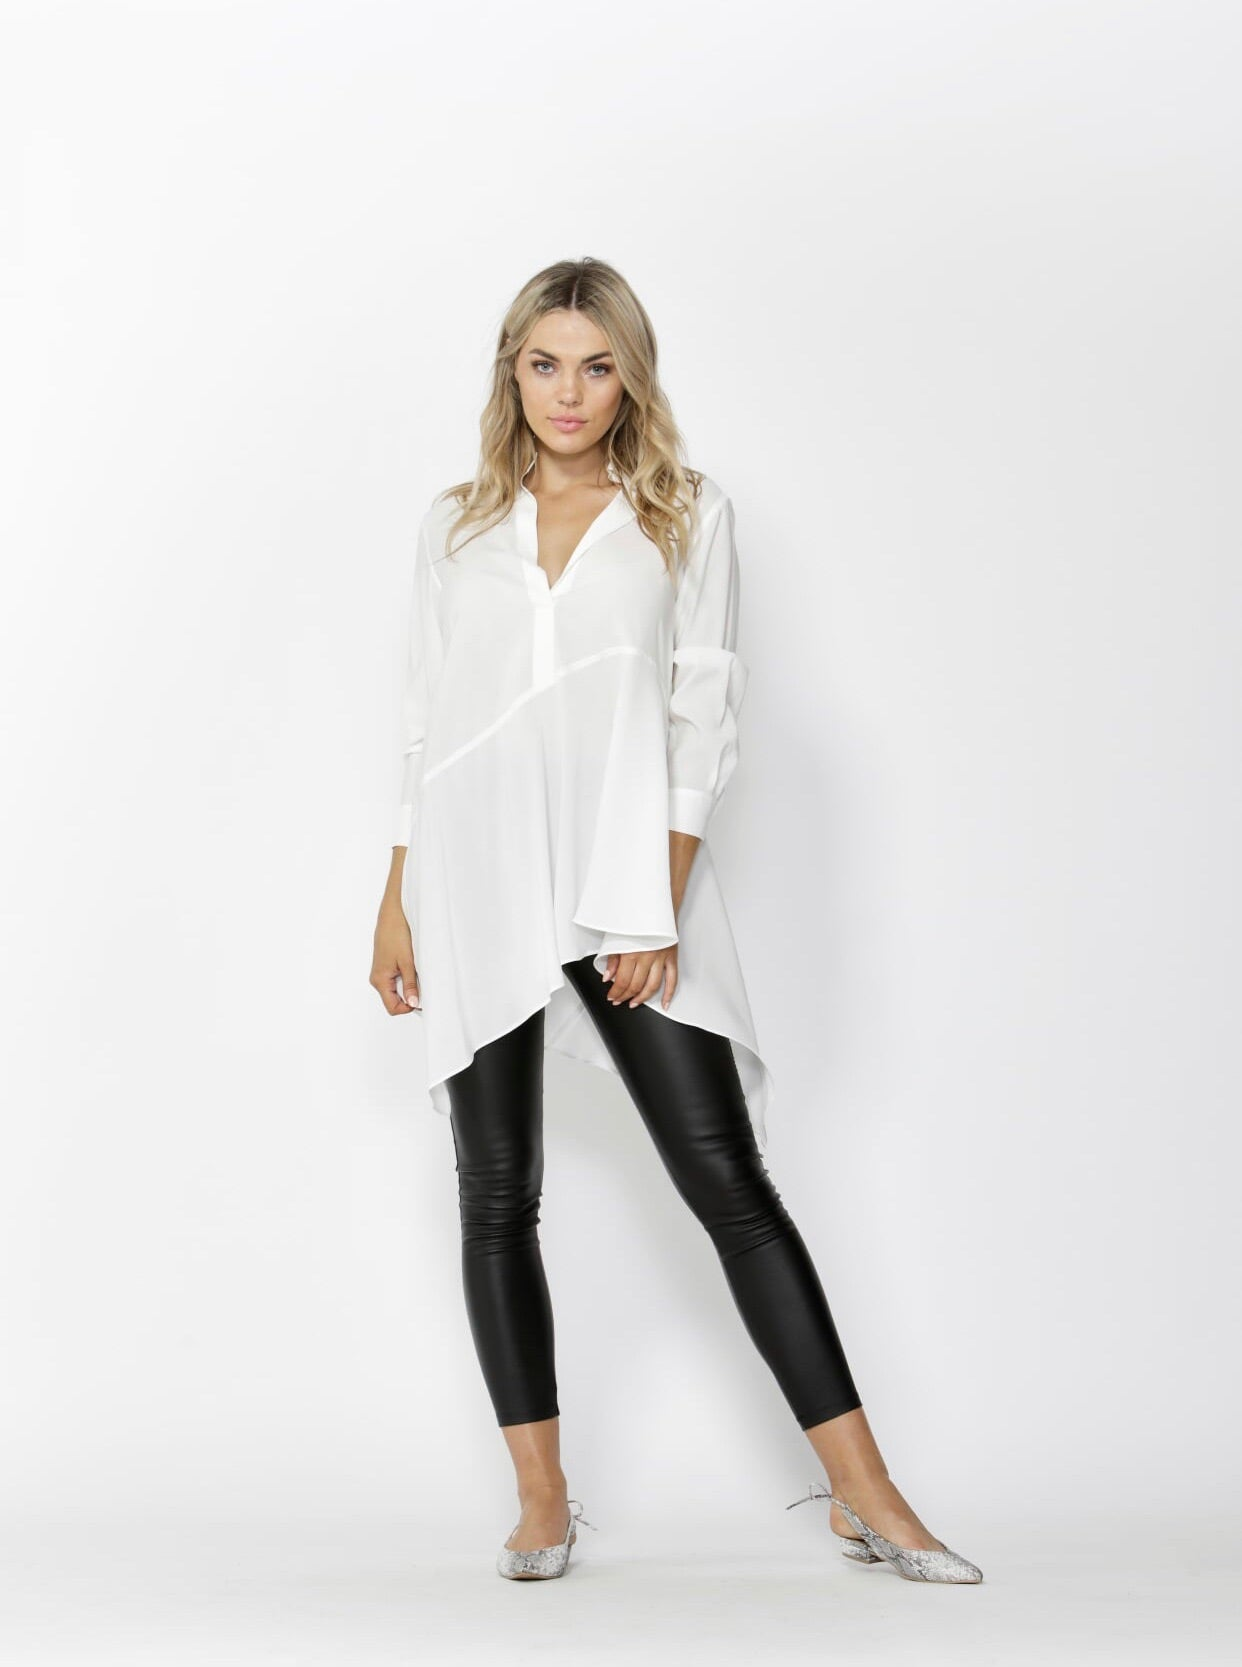 The Excess Shirt - Debbie Lee Fashions